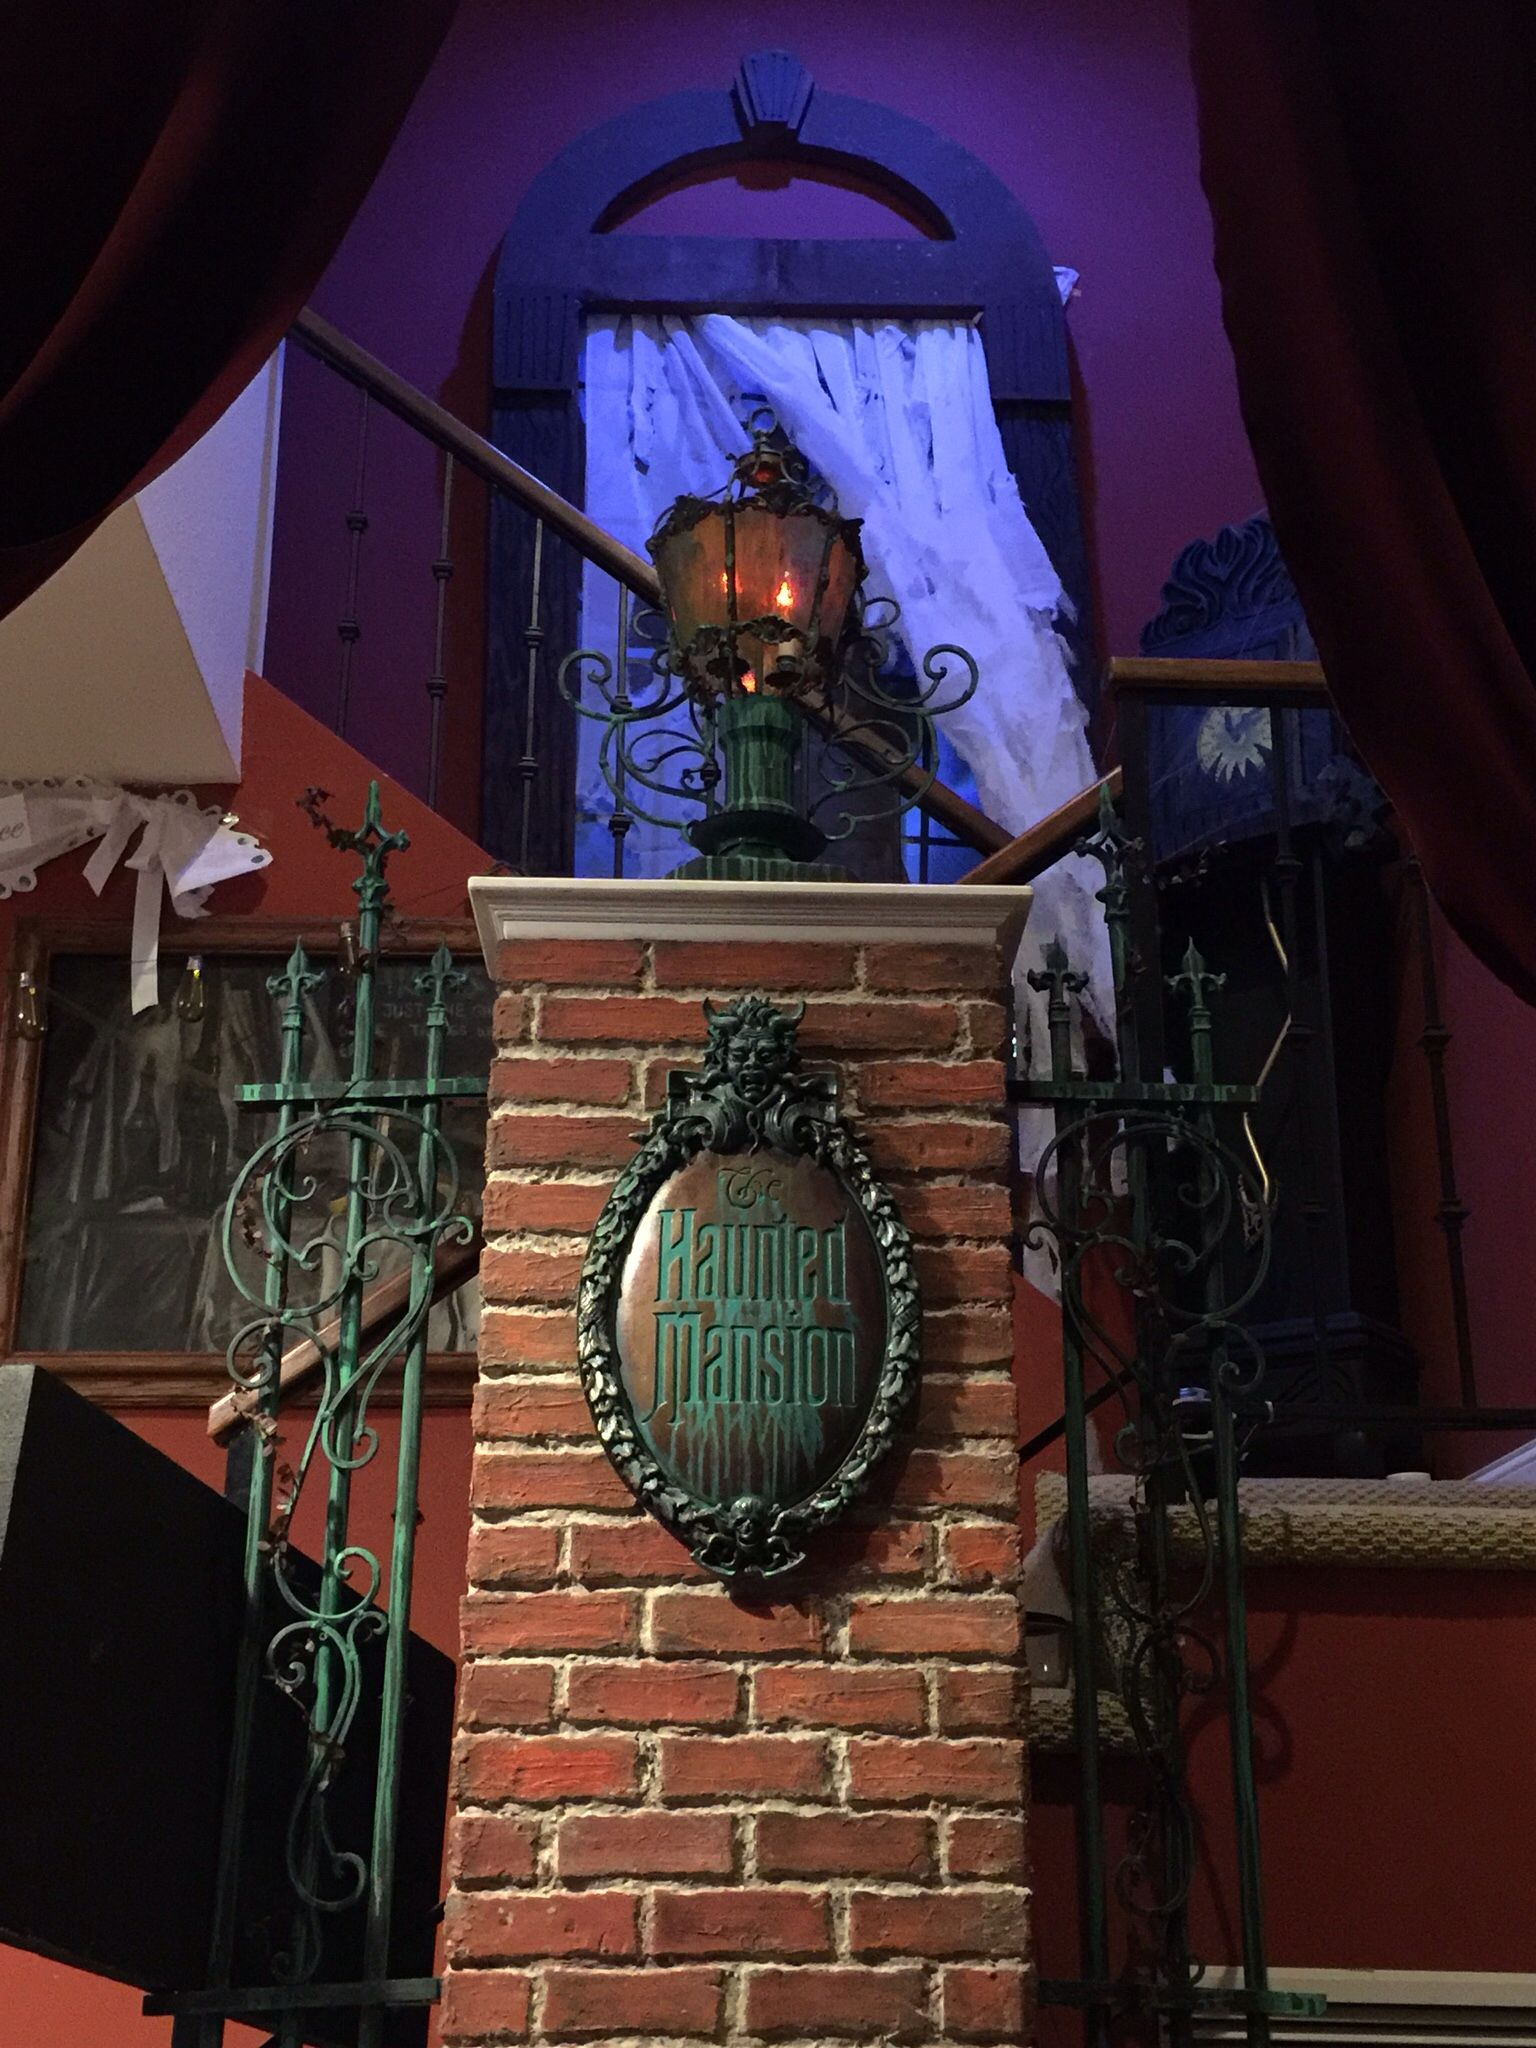 Haunted Mansion Home Decor: Haunted Mansion Like For The Party.